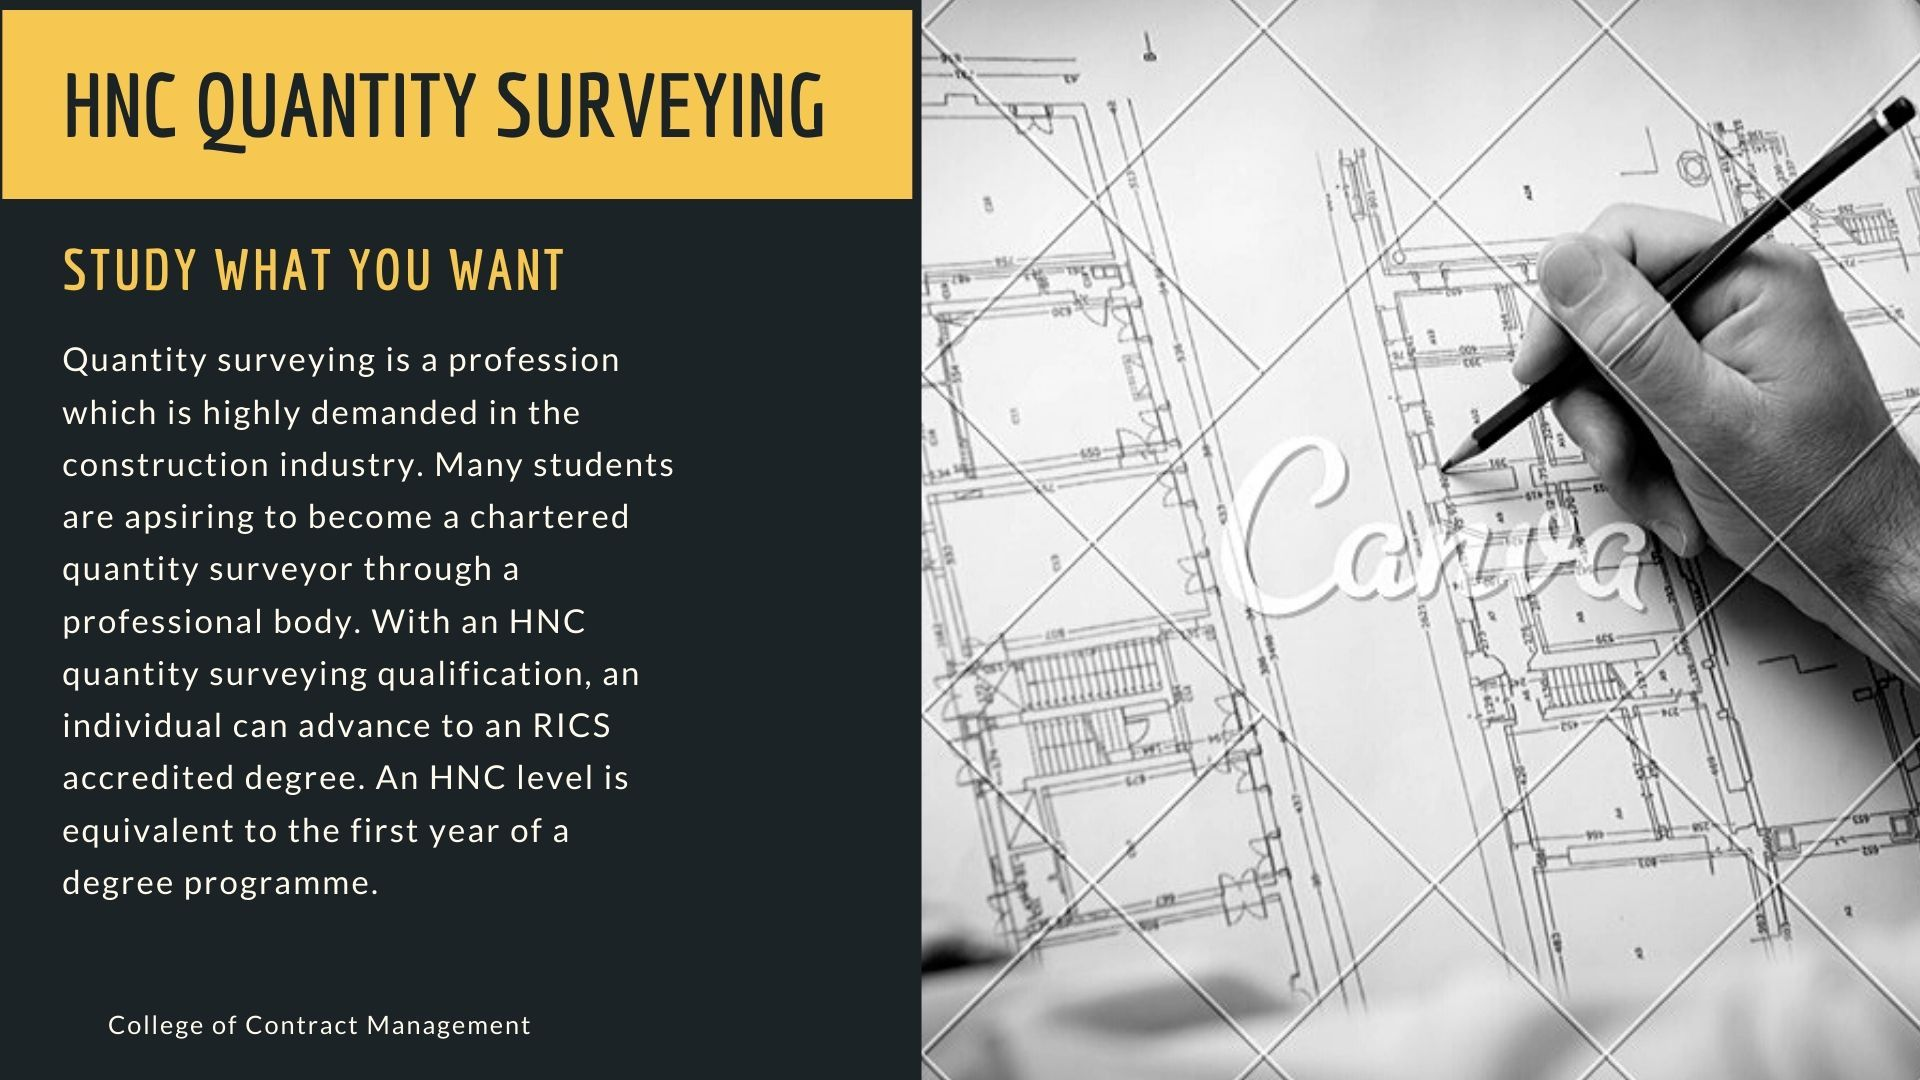 Quantity Surveying Is A Profession Which Is Highly Demanded In The